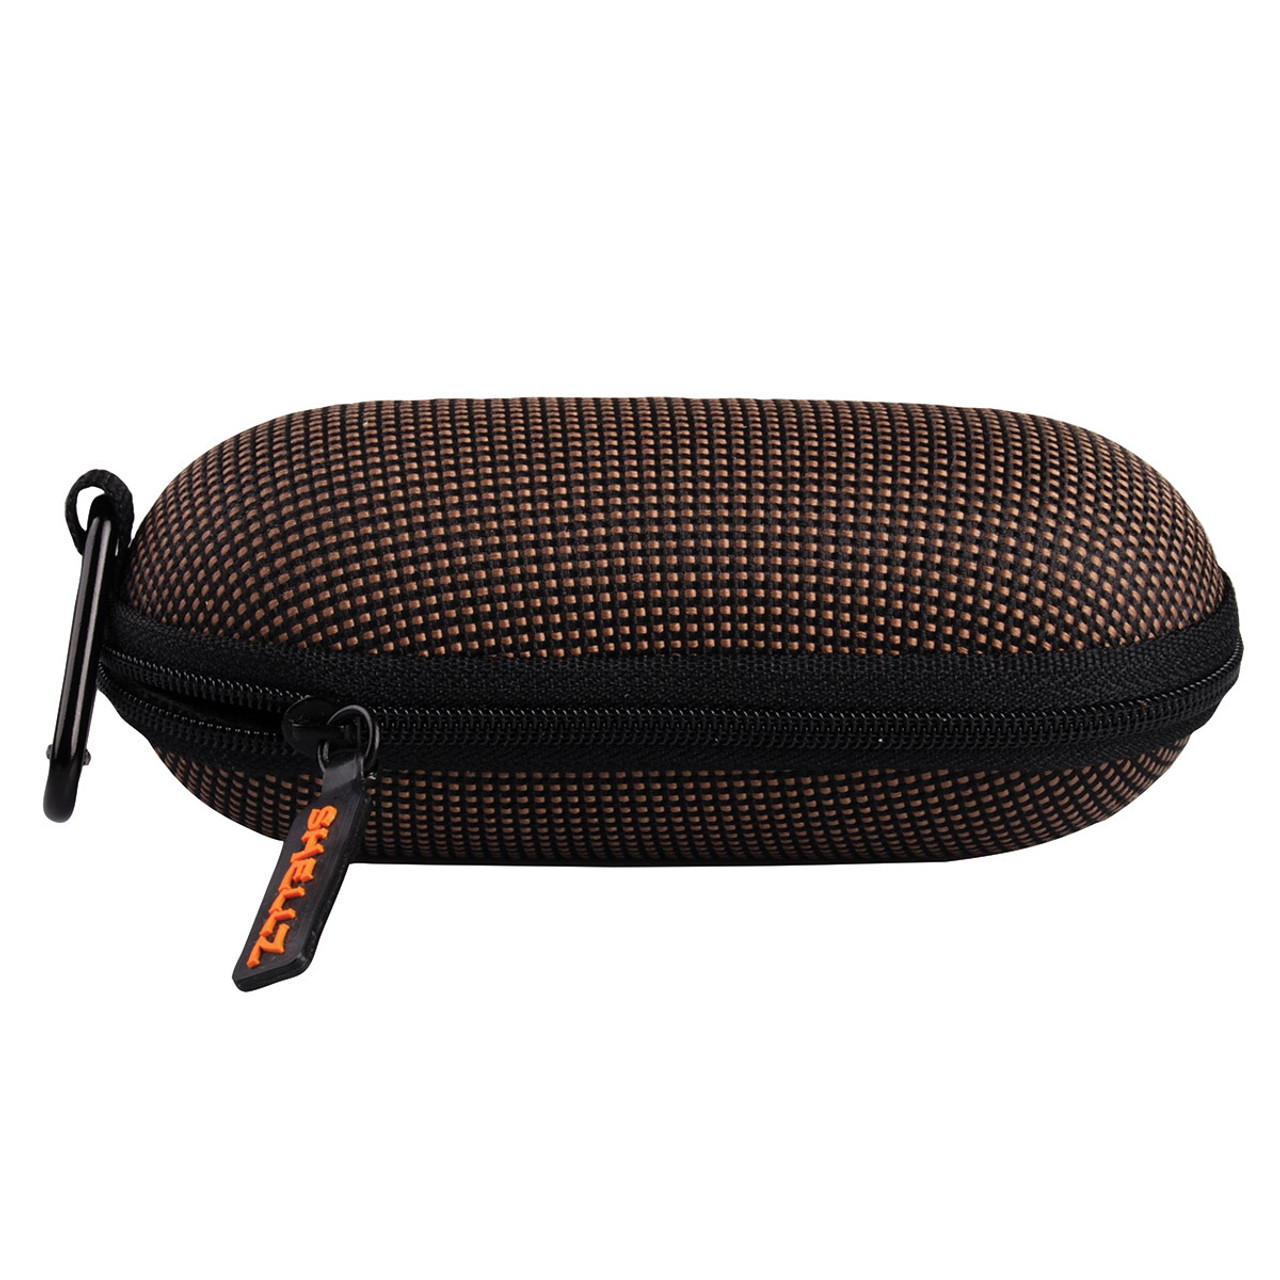 Shellz Zipper Case glass pipe protection Padded glass pipe pouch UNS Wholesale Smoke Shop Distributor Head Shop Novelty Supplies Wholesale